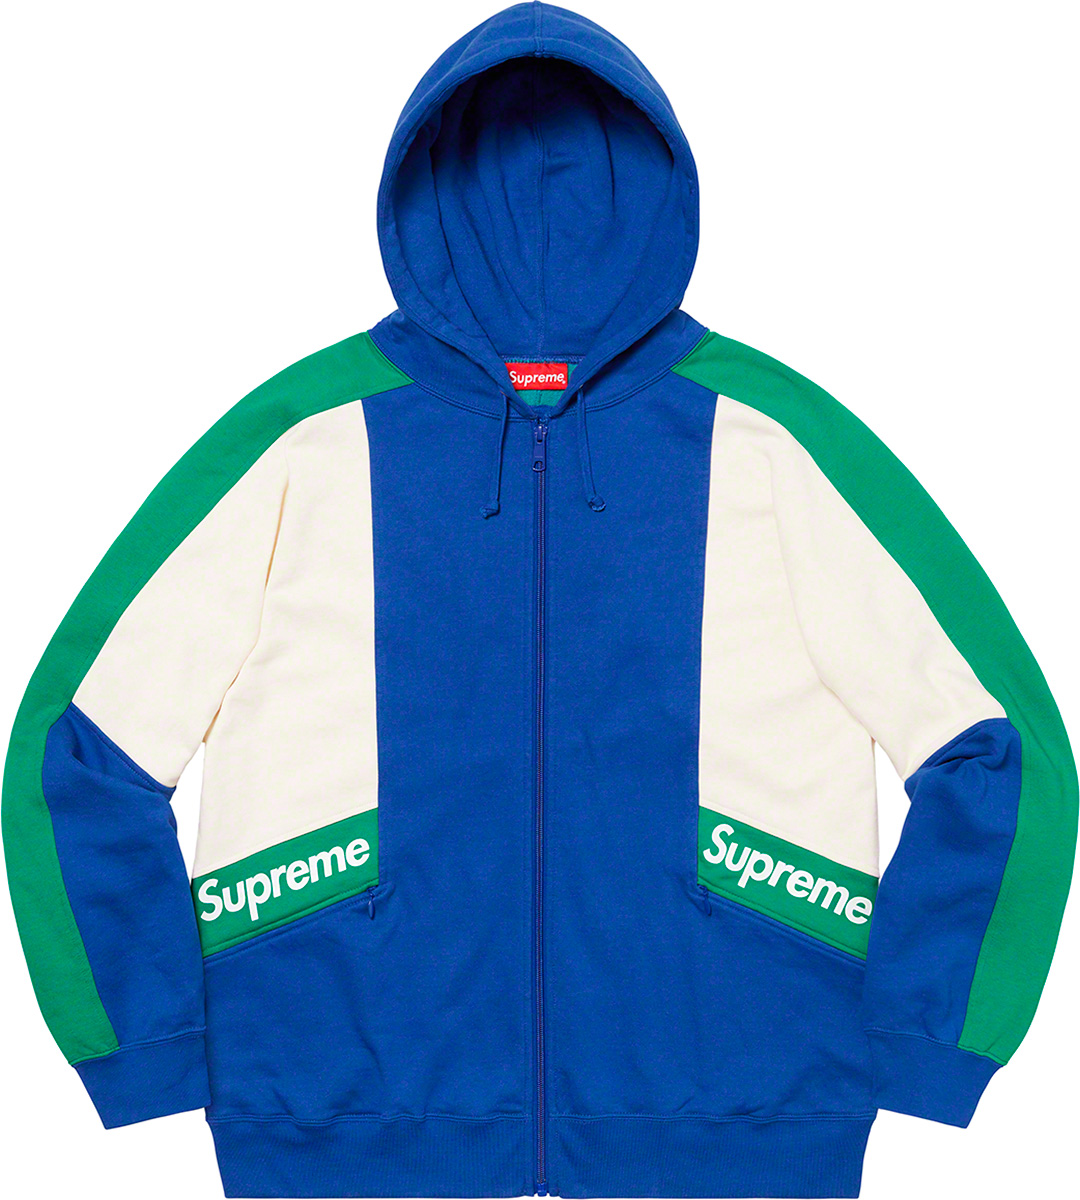 supreme-20ss-spring-summer-color-blocked-zip-up-hooded-sweatshirt